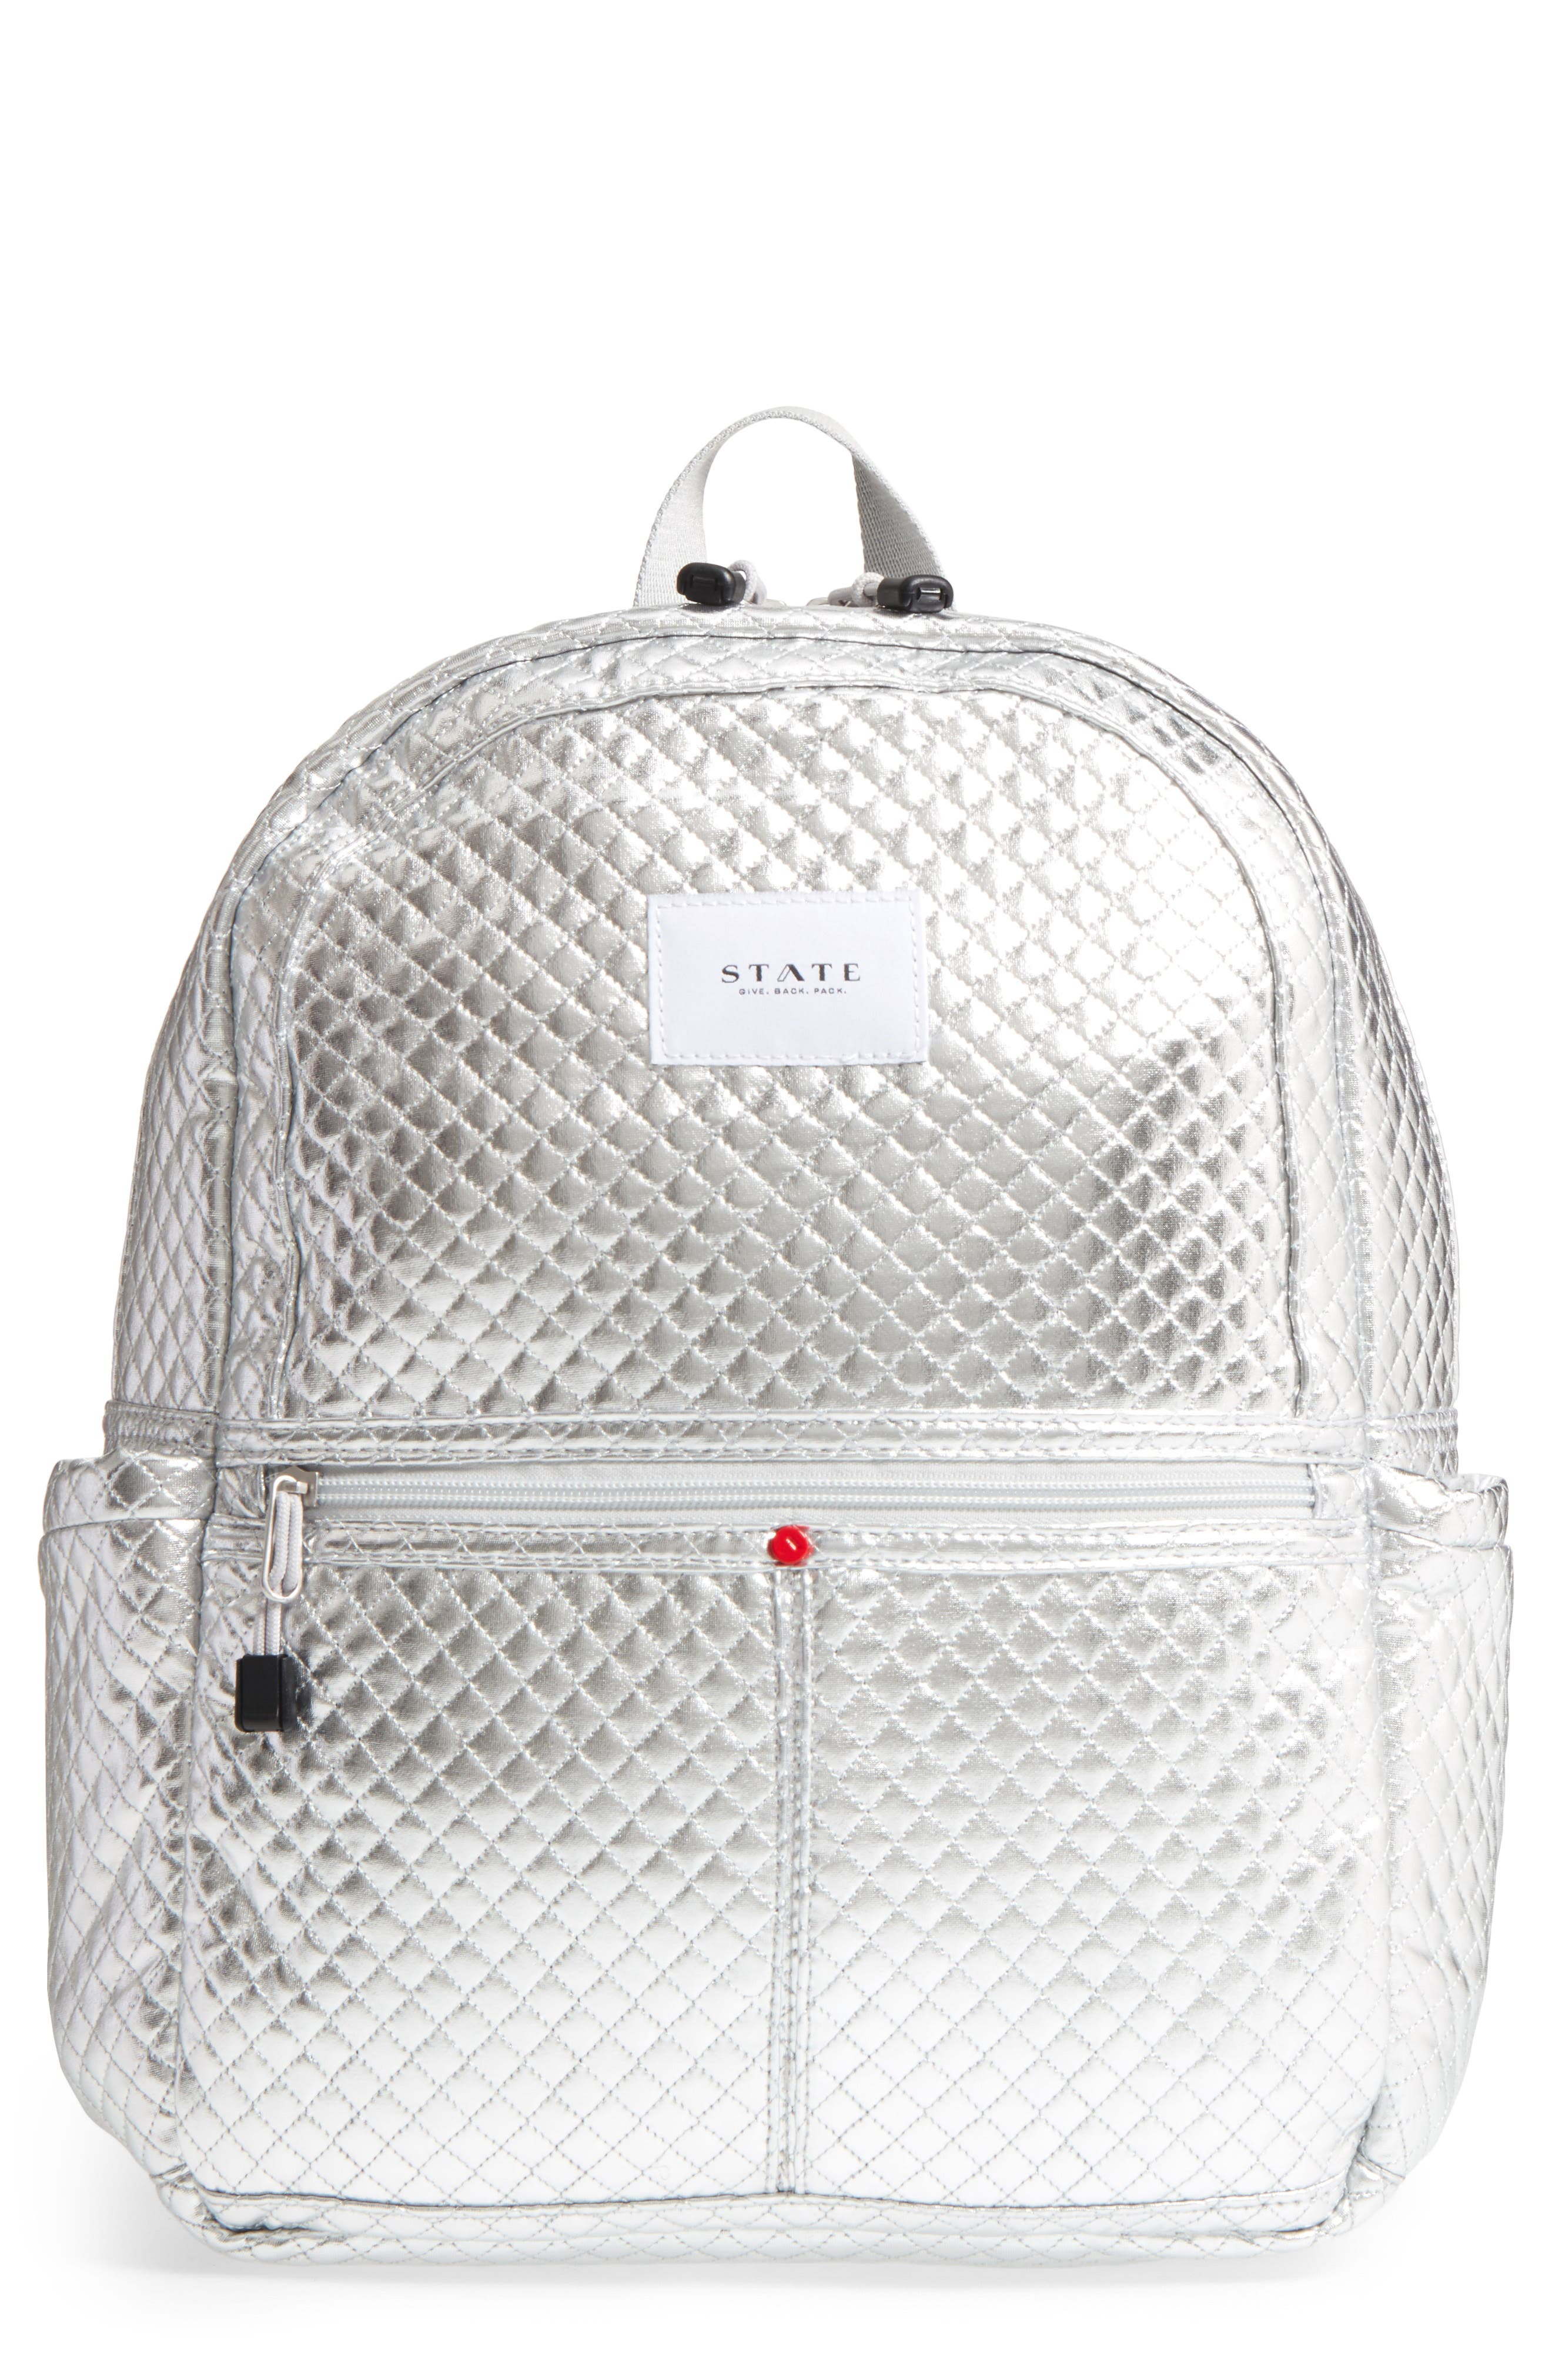 Quilted Metallic Kane Backpack,                             Main thumbnail 1, color,                             041